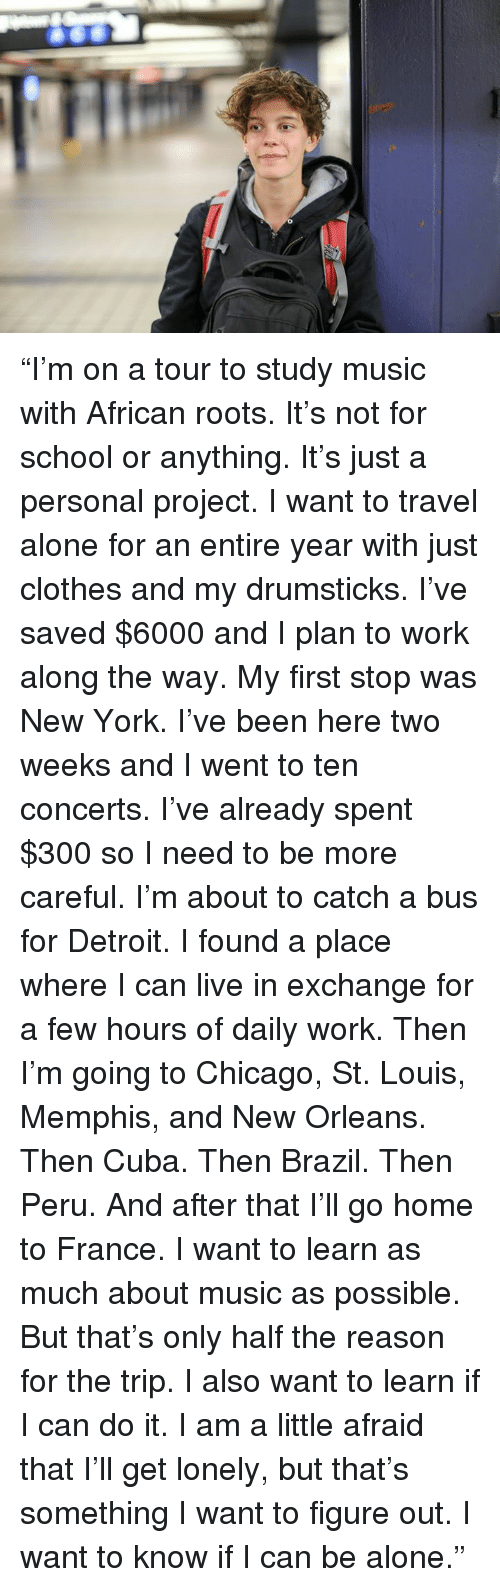 """drumsticks: """"I'm on a tour to study music with African roots.  It's not for school or anything.  It's just a personal project.  I want to travel alone for an entire year with just clothes and my drumsticks.  I've saved $6000 and I plan to work along the way.  My first stop was New York.  I've been here two weeks and I went to ten concerts.  I've already spent $300 so I need to be more careful.  I'm about to catch a bus for Detroit.  I found a place where I can live in exchange for a few hours of daily work.  Then I'm going to Chicago, St. Louis, Memphis, and New Orleans.  Then Cuba.  Then Brazil.  Then Peru.  And after that I'll go home to France.  I want to learn as much about music as possible.  But that's only half the reason for the trip.  I also want to learn if I can do it.  I am a little afraid that I'll get lonely, but that's something I want to figure out.  I want to know if I can be alone."""""""